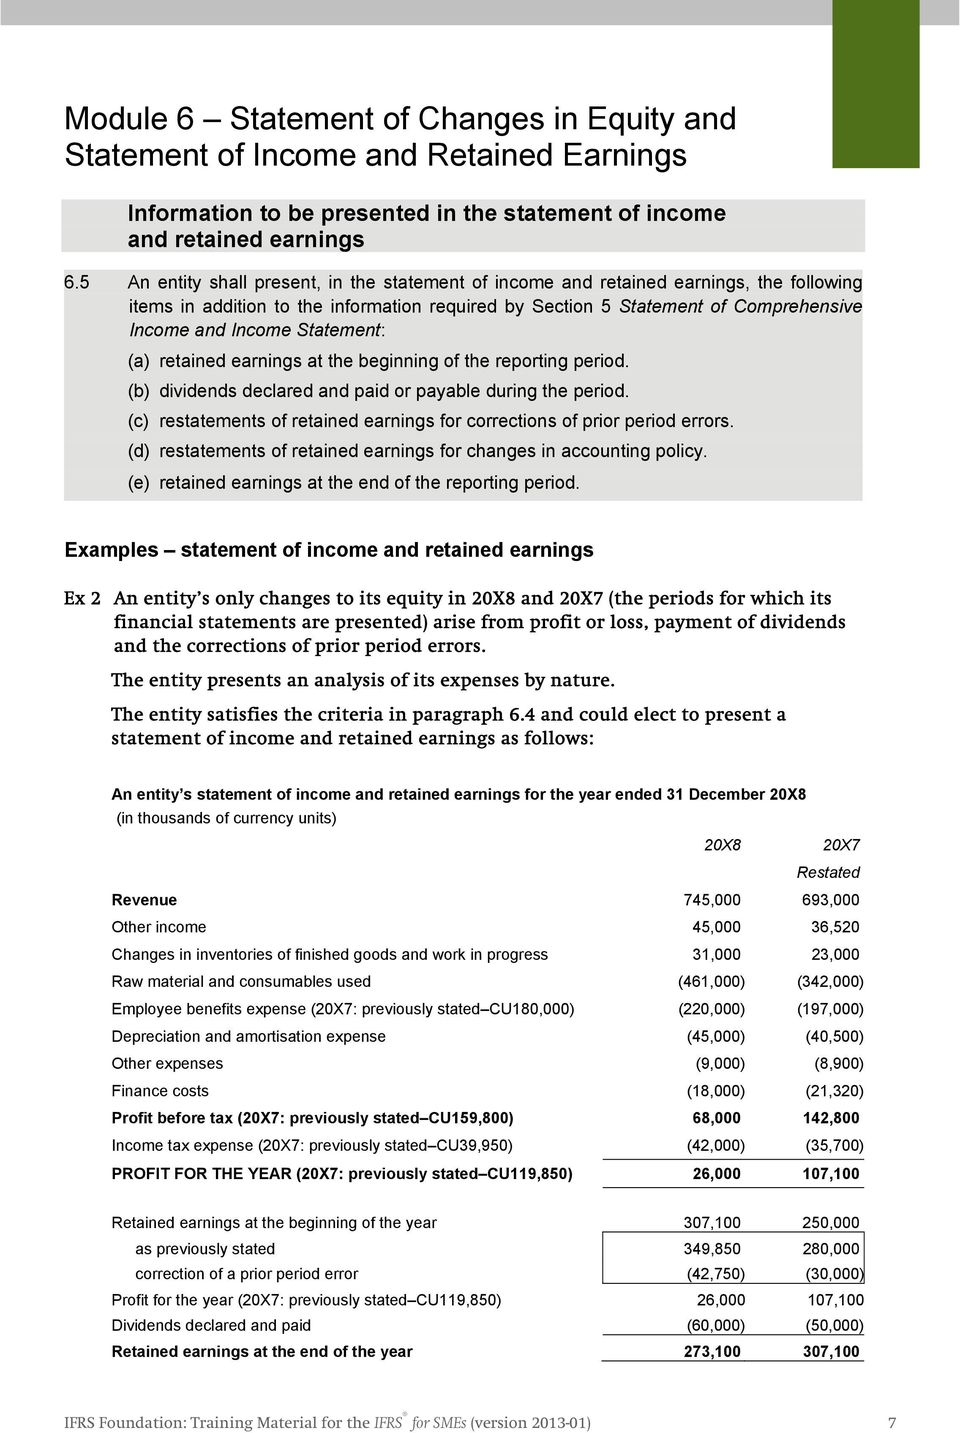 Module 6 Statement of Changes in Equity and Statement of